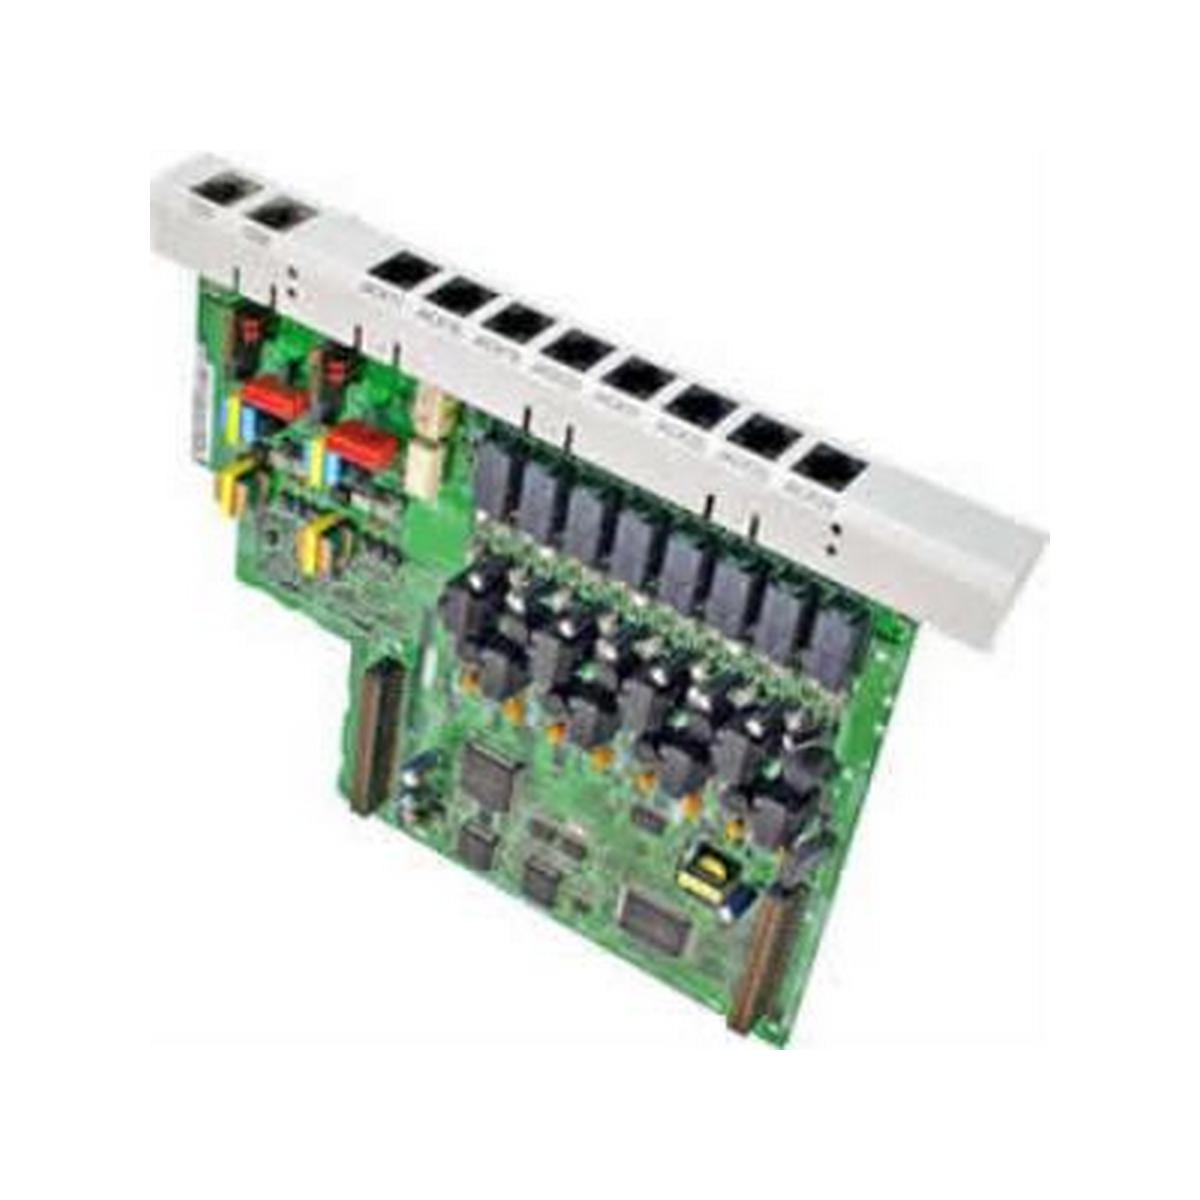 Panasonic KXTA82481  2 PORT ANALOG CO LINE AND 8 PORT HYBRID EXTENSION CARD